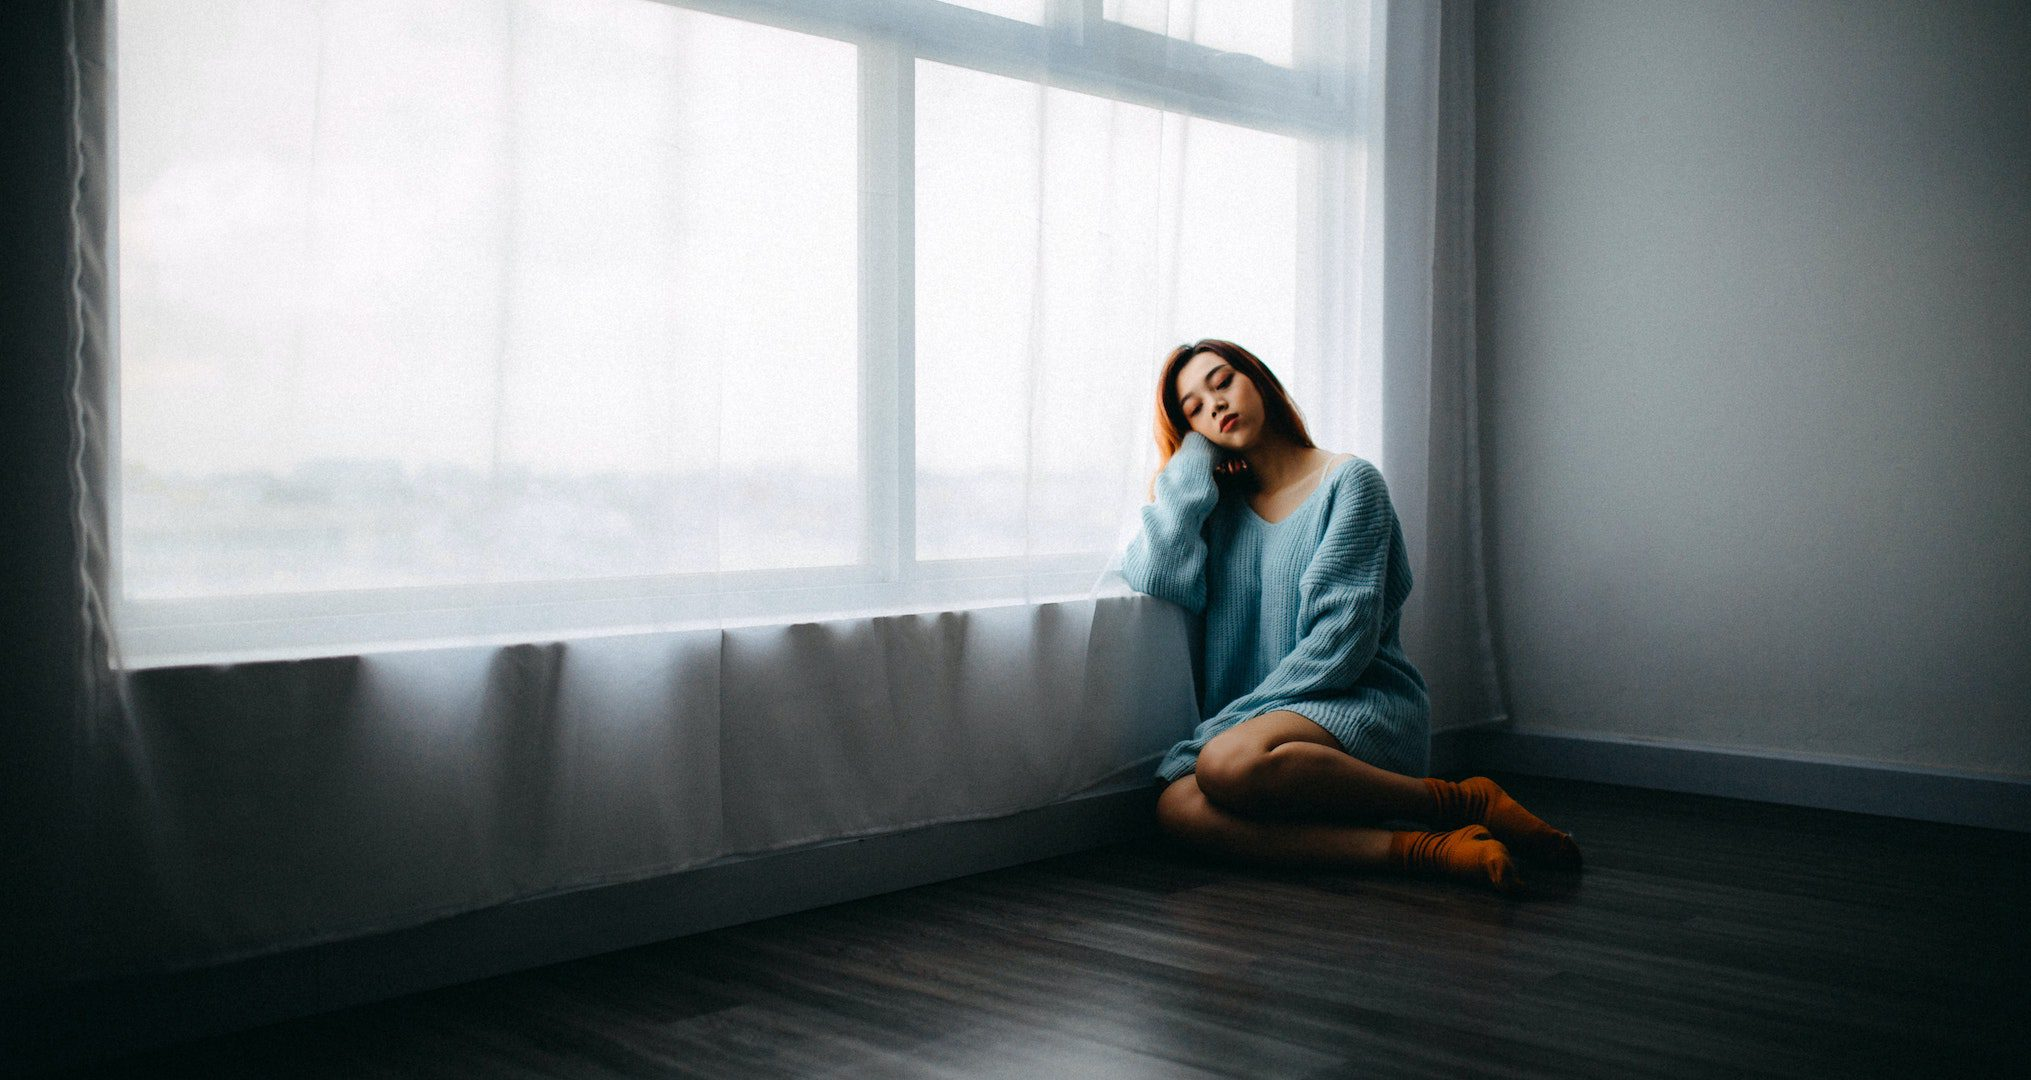 girl sitting on floor alone in a room